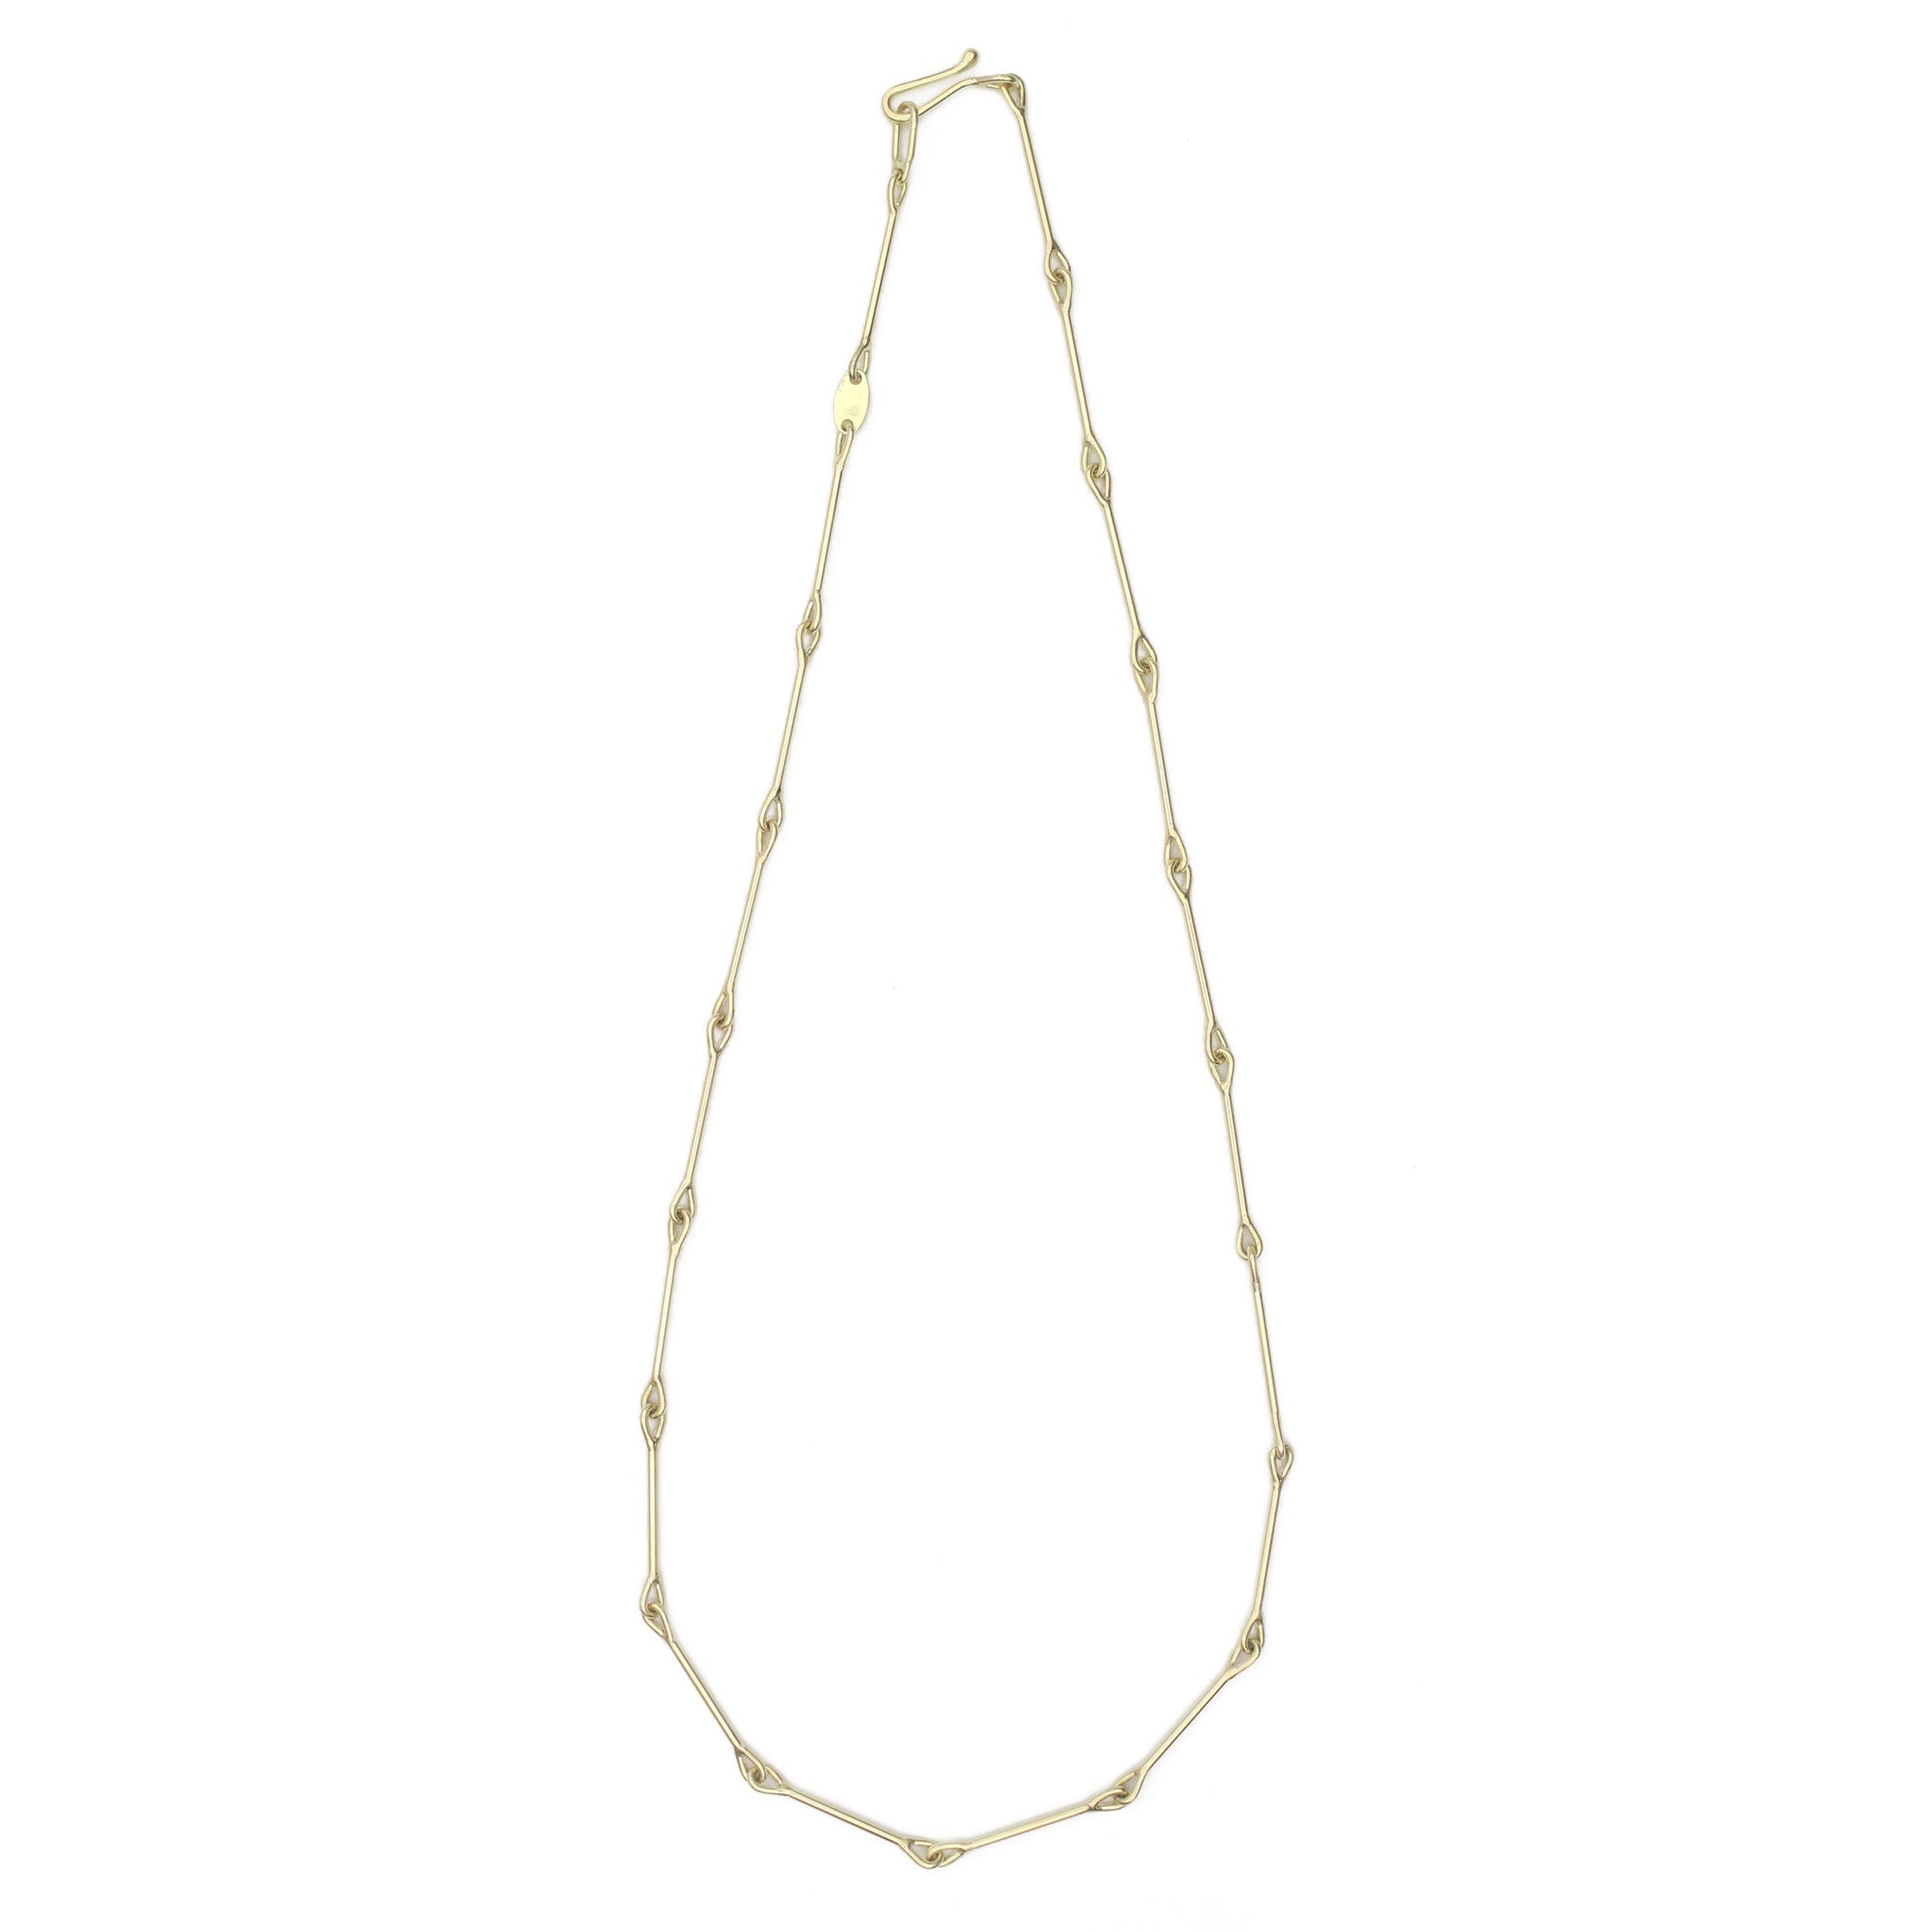 Needle Eye Chain Necklace - Heavy Weight